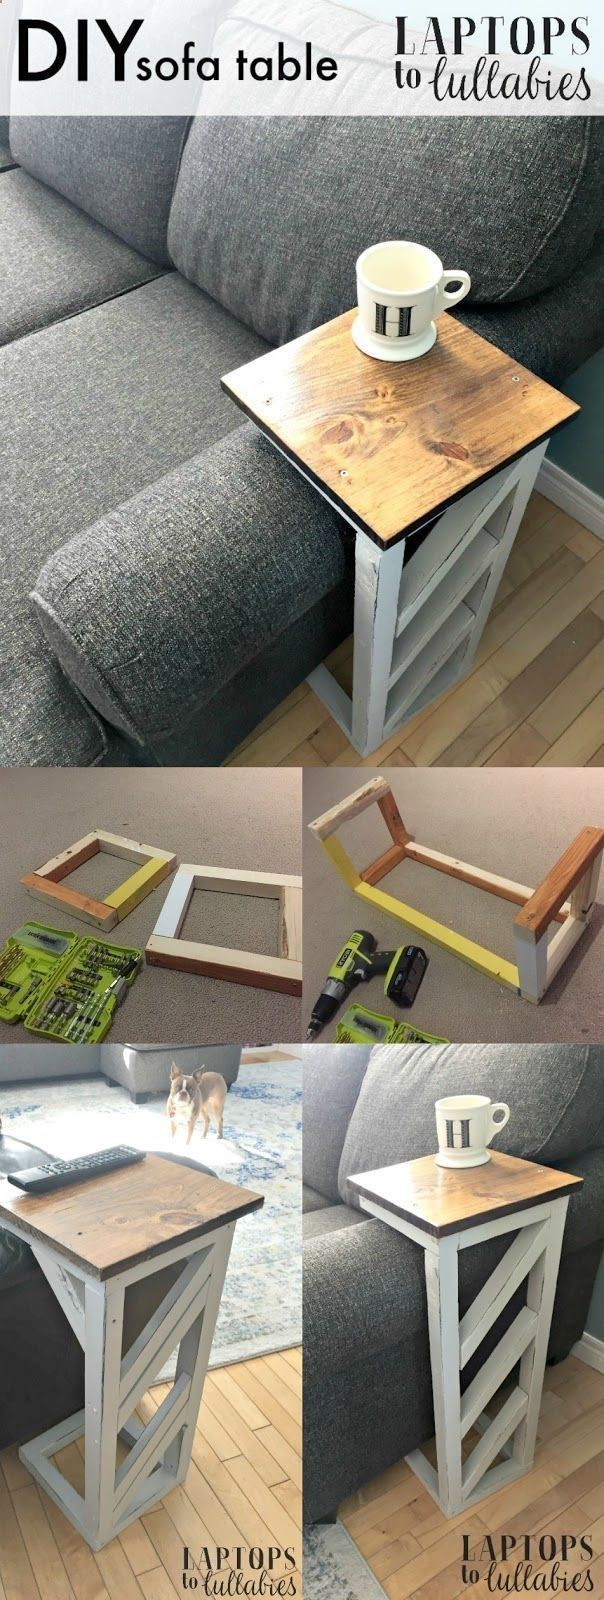 Woodworking - Wood Profit - DIY Life Hacks Crafts : Laptops to Lullabies: Easy DIY sofa tables Discover How You Can Start A Woodworking Business From Home Easily in 7 Days With NO Capital Needed!